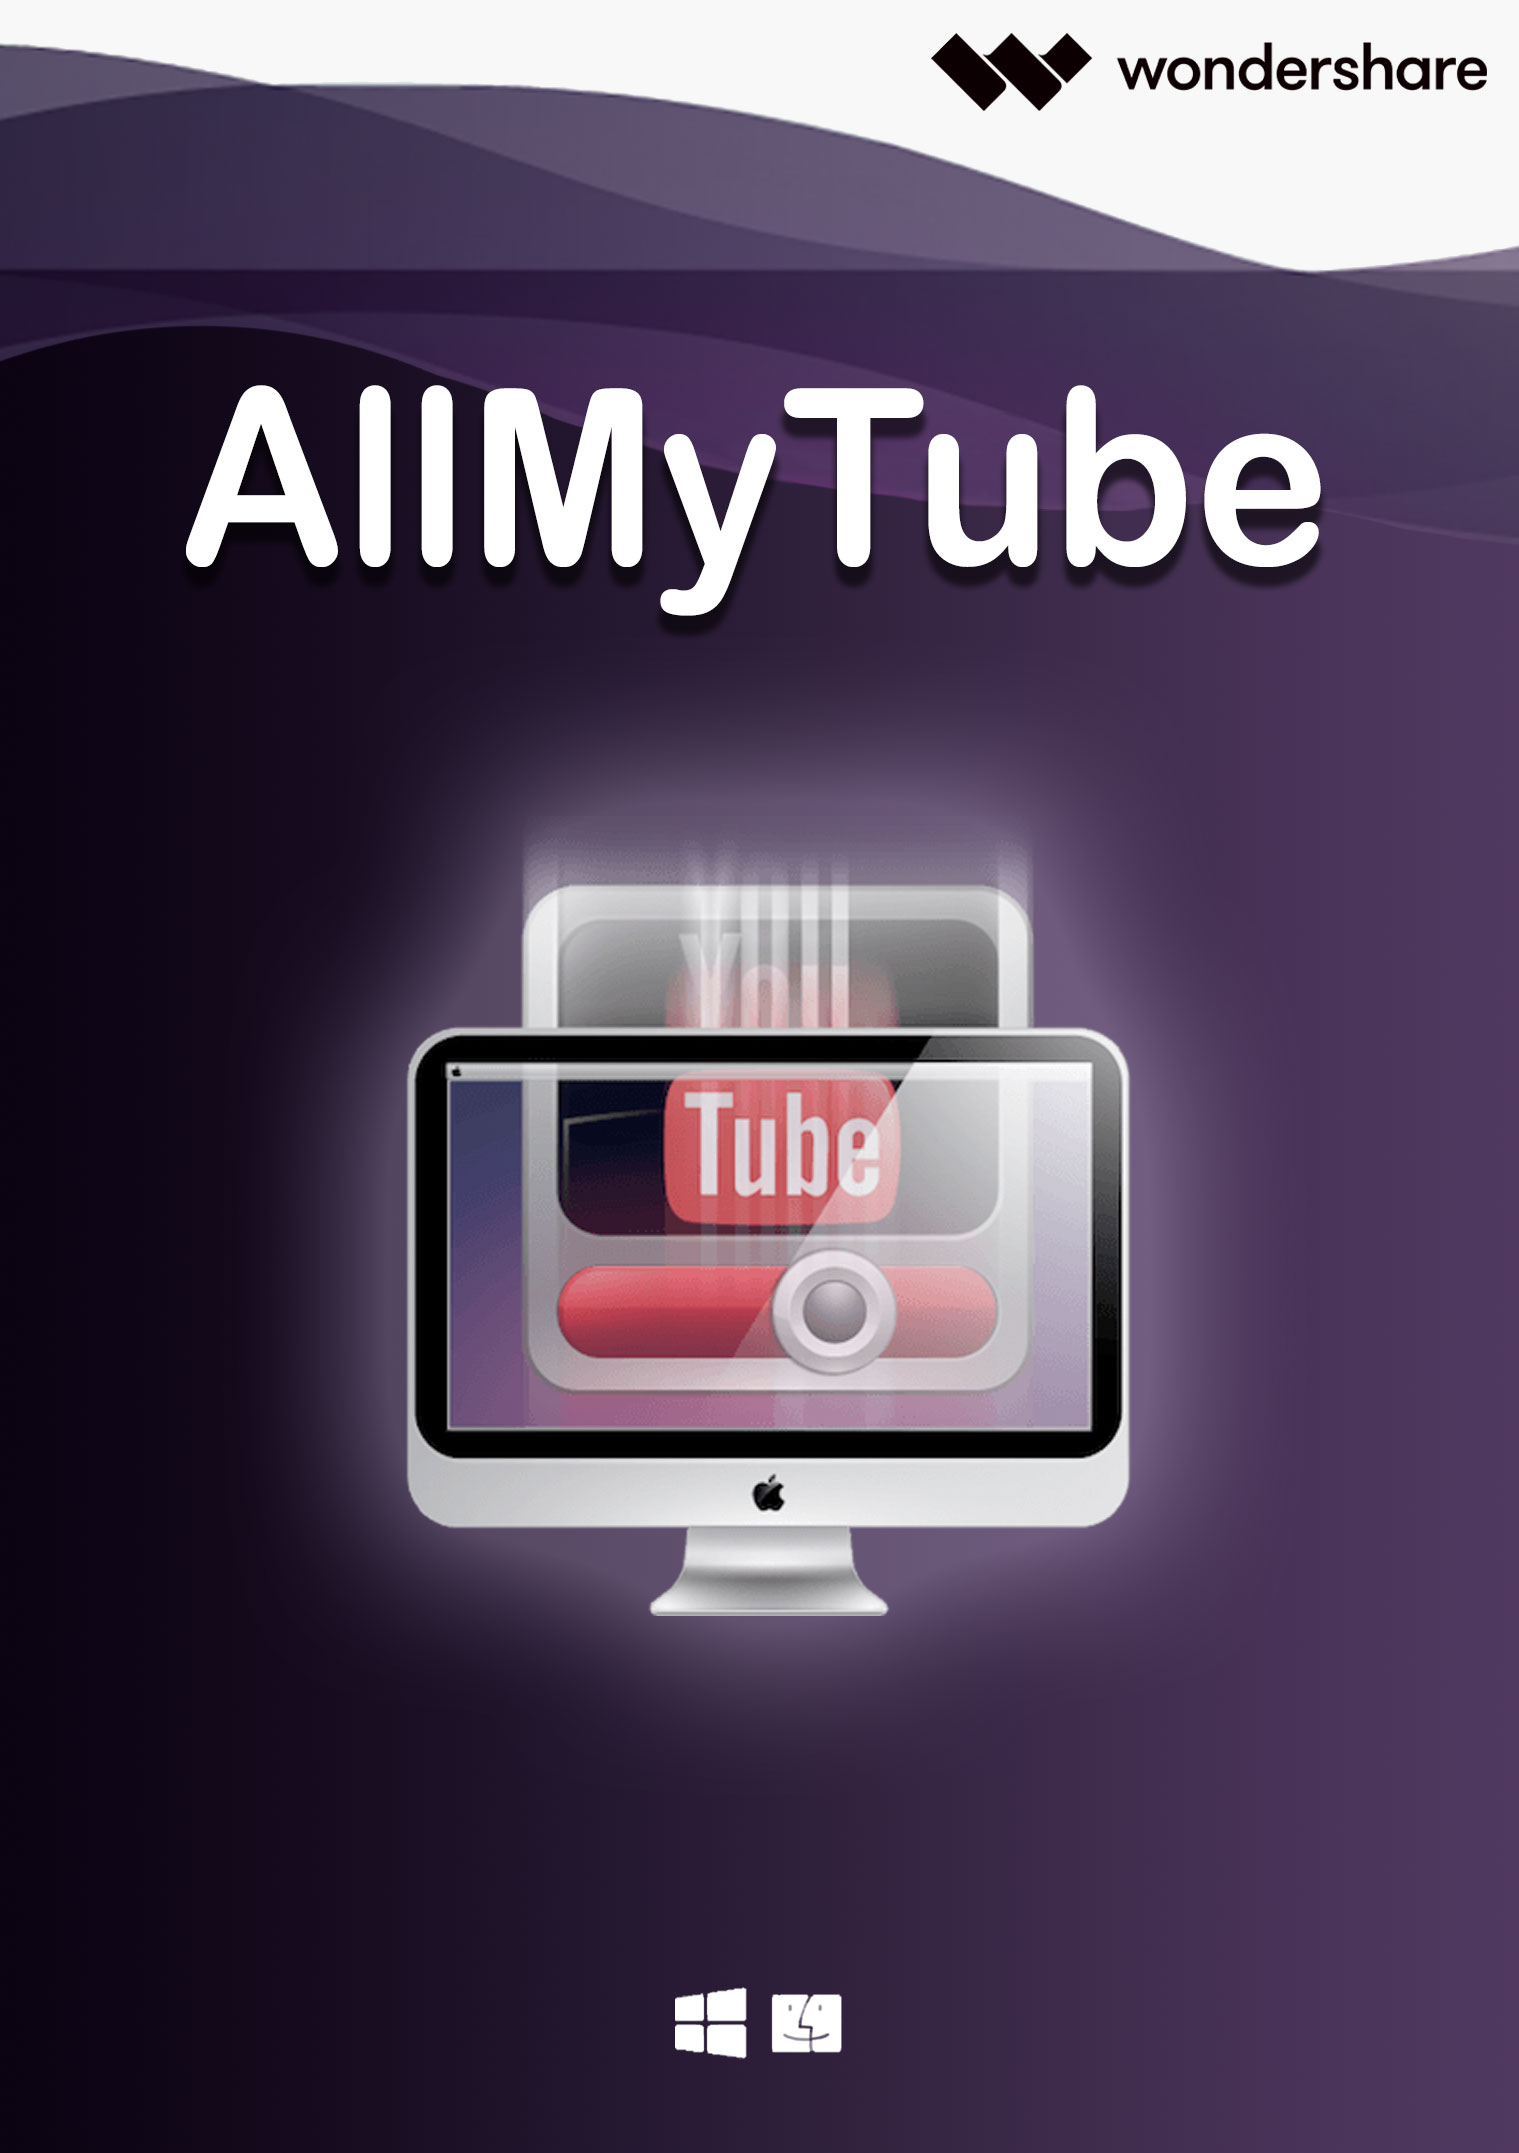 Wondershare AllMyTube für PC - 2018 [Download]